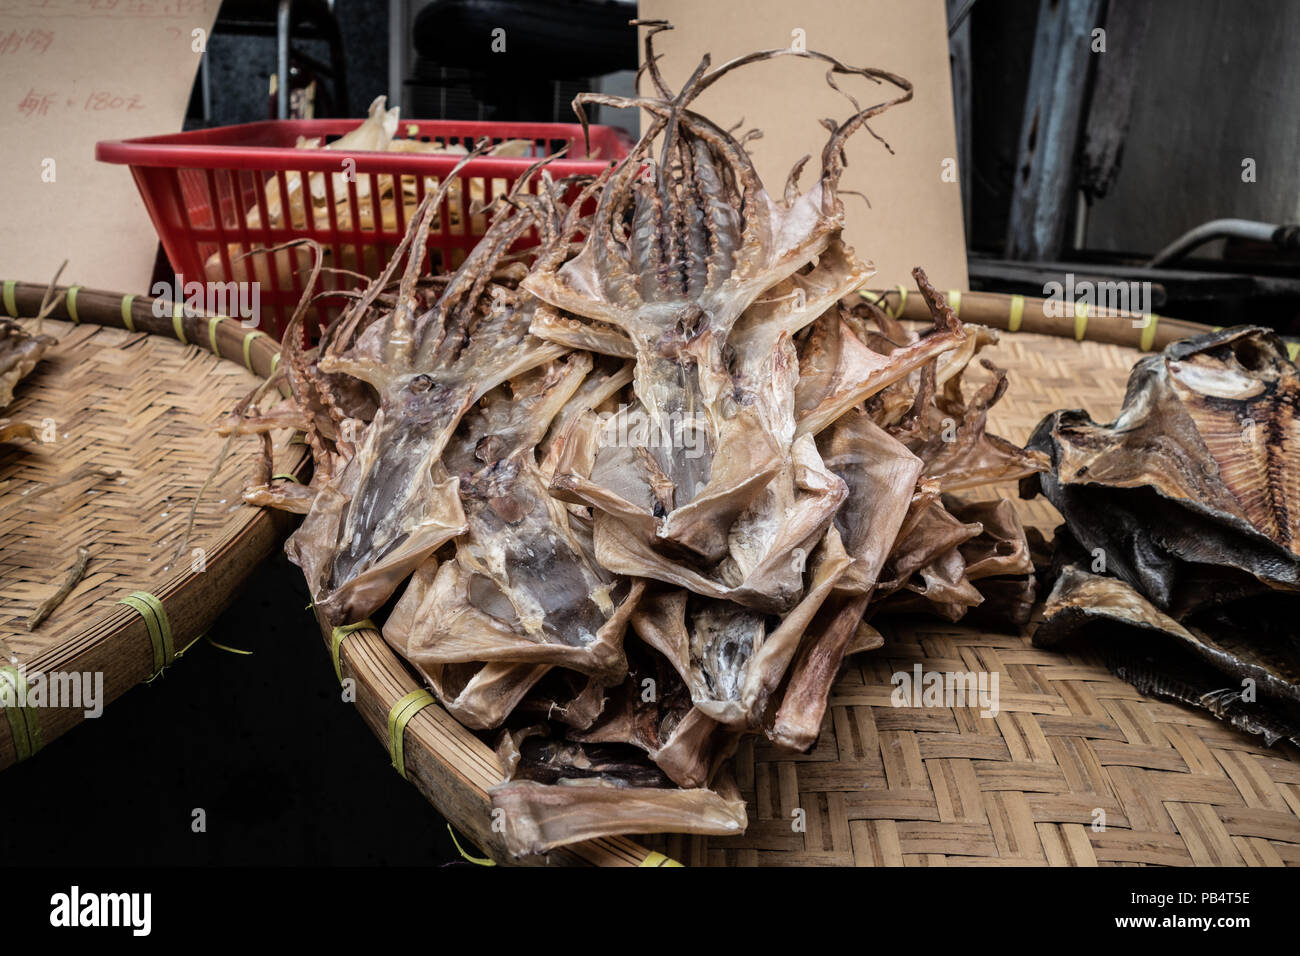 Dried Cuttlefish Stock Photos & Dried Cuttlefish Stock